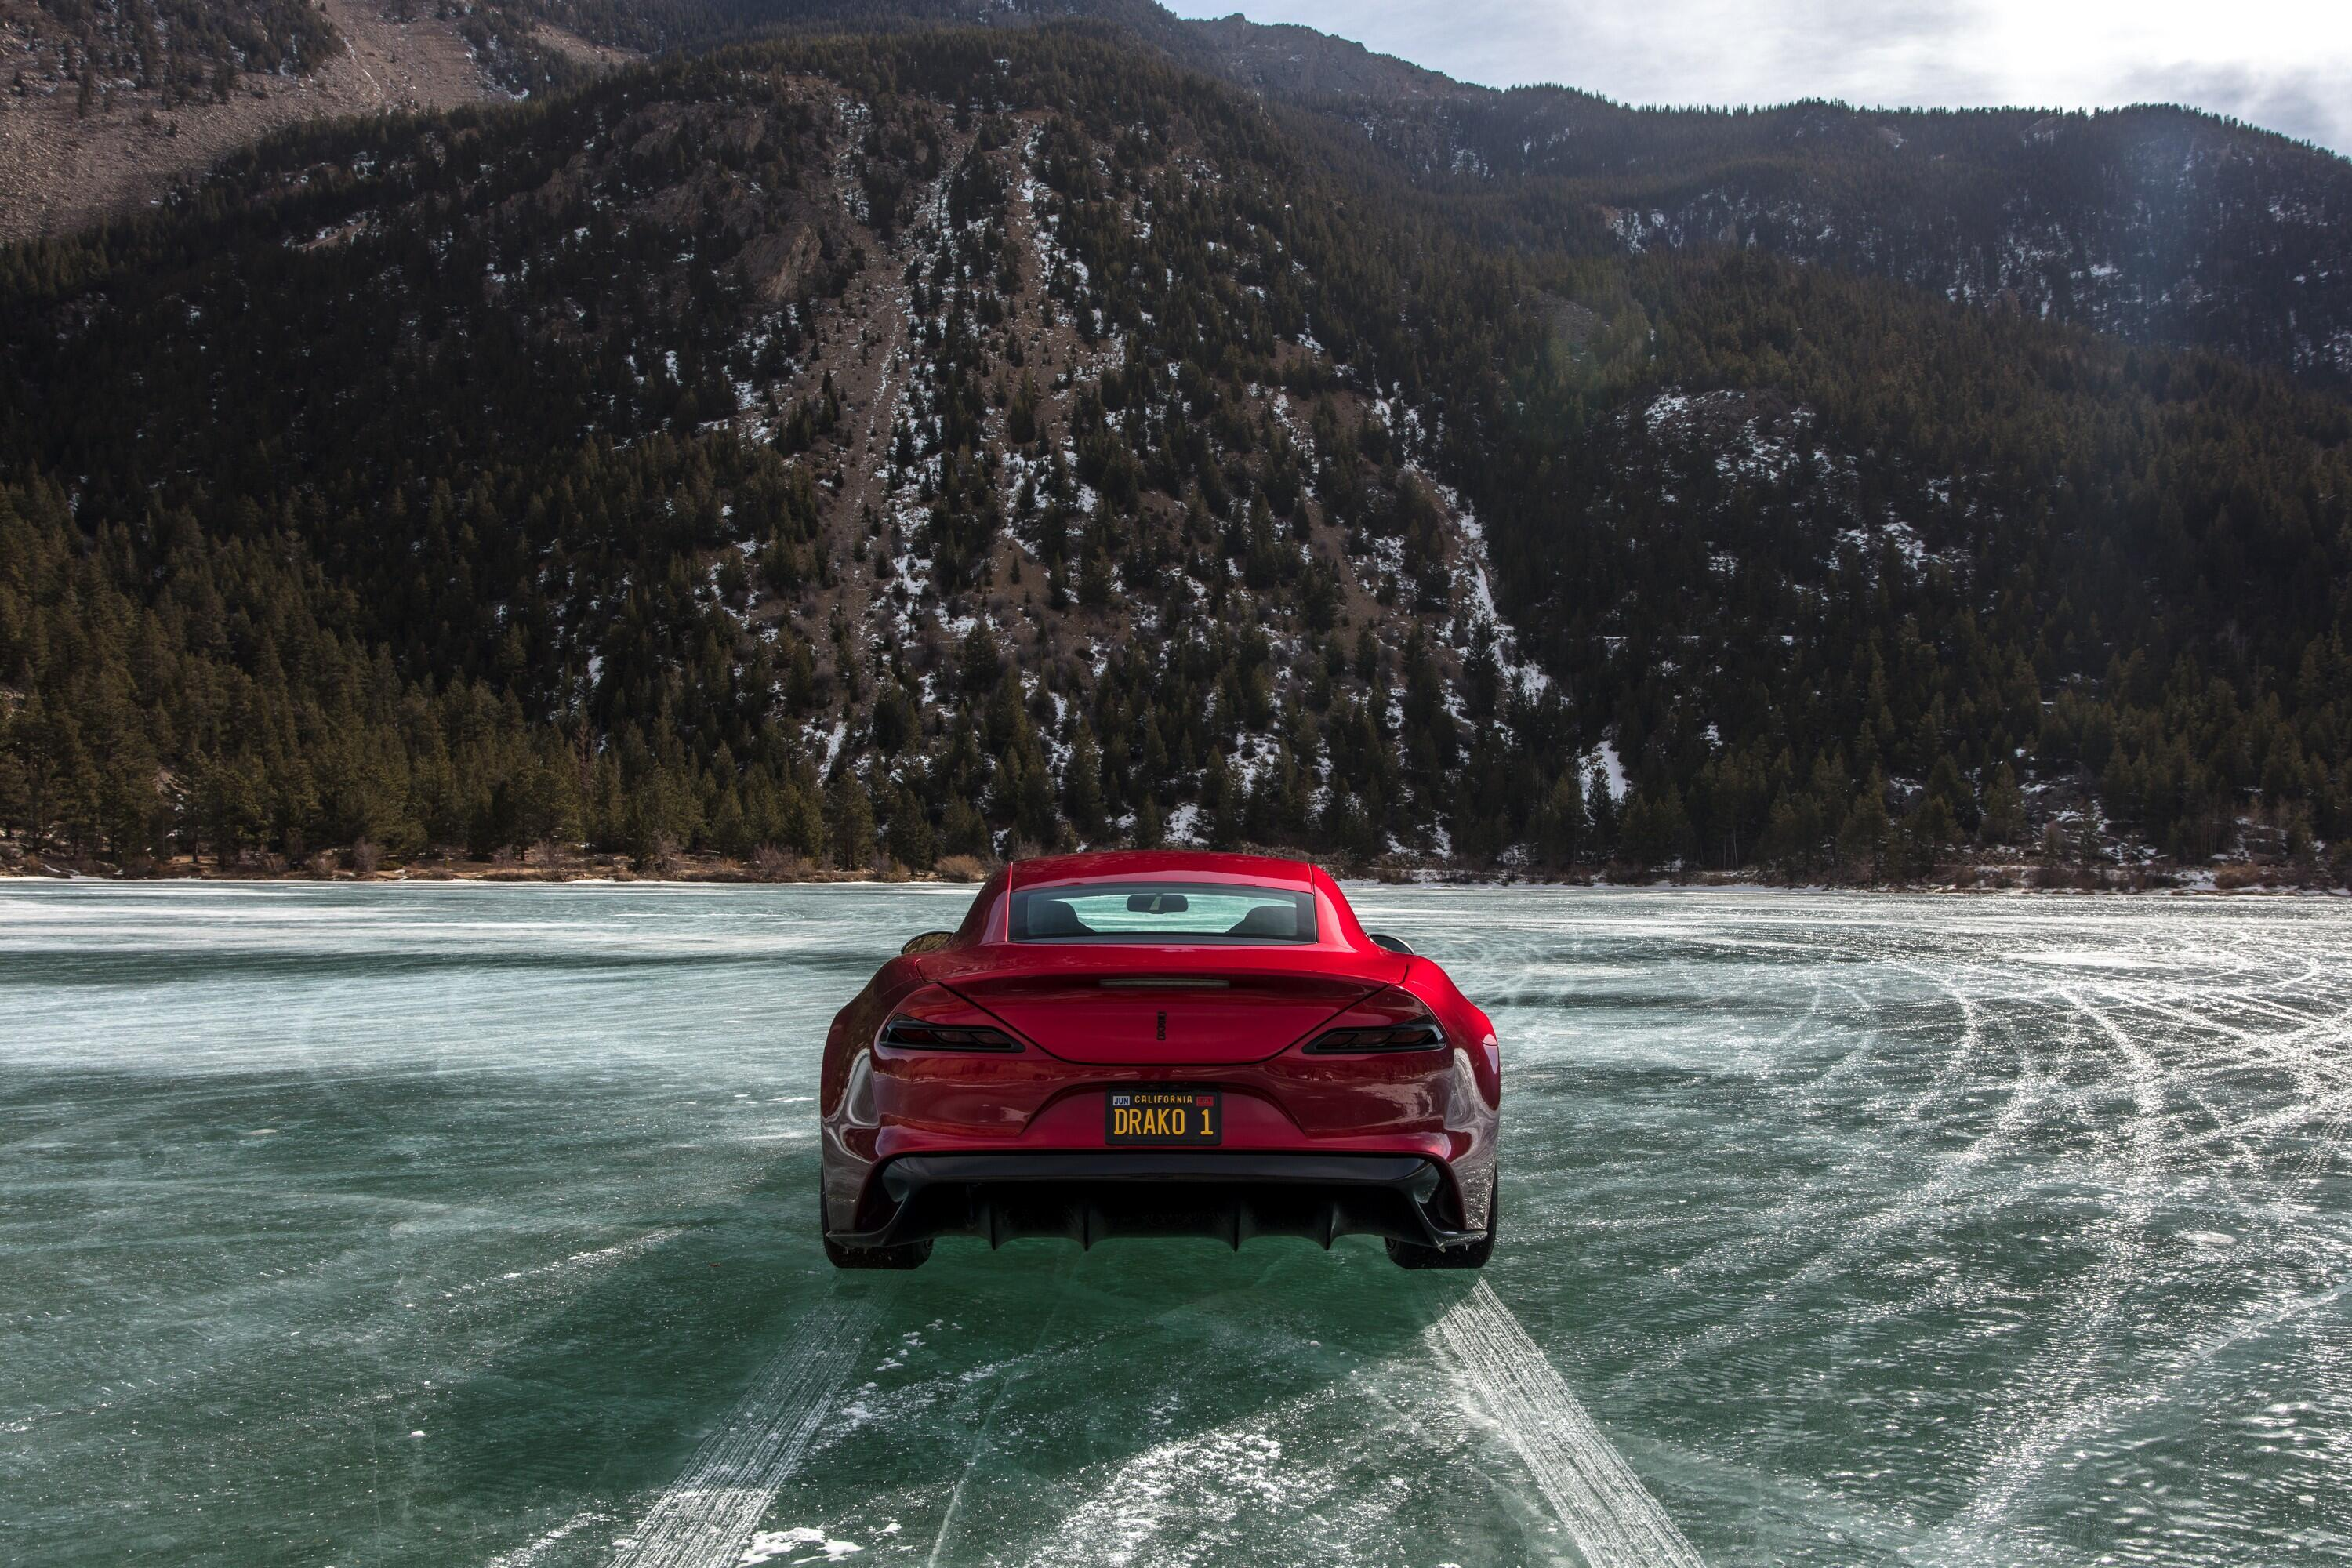 drako-motors-gte-winter-testing